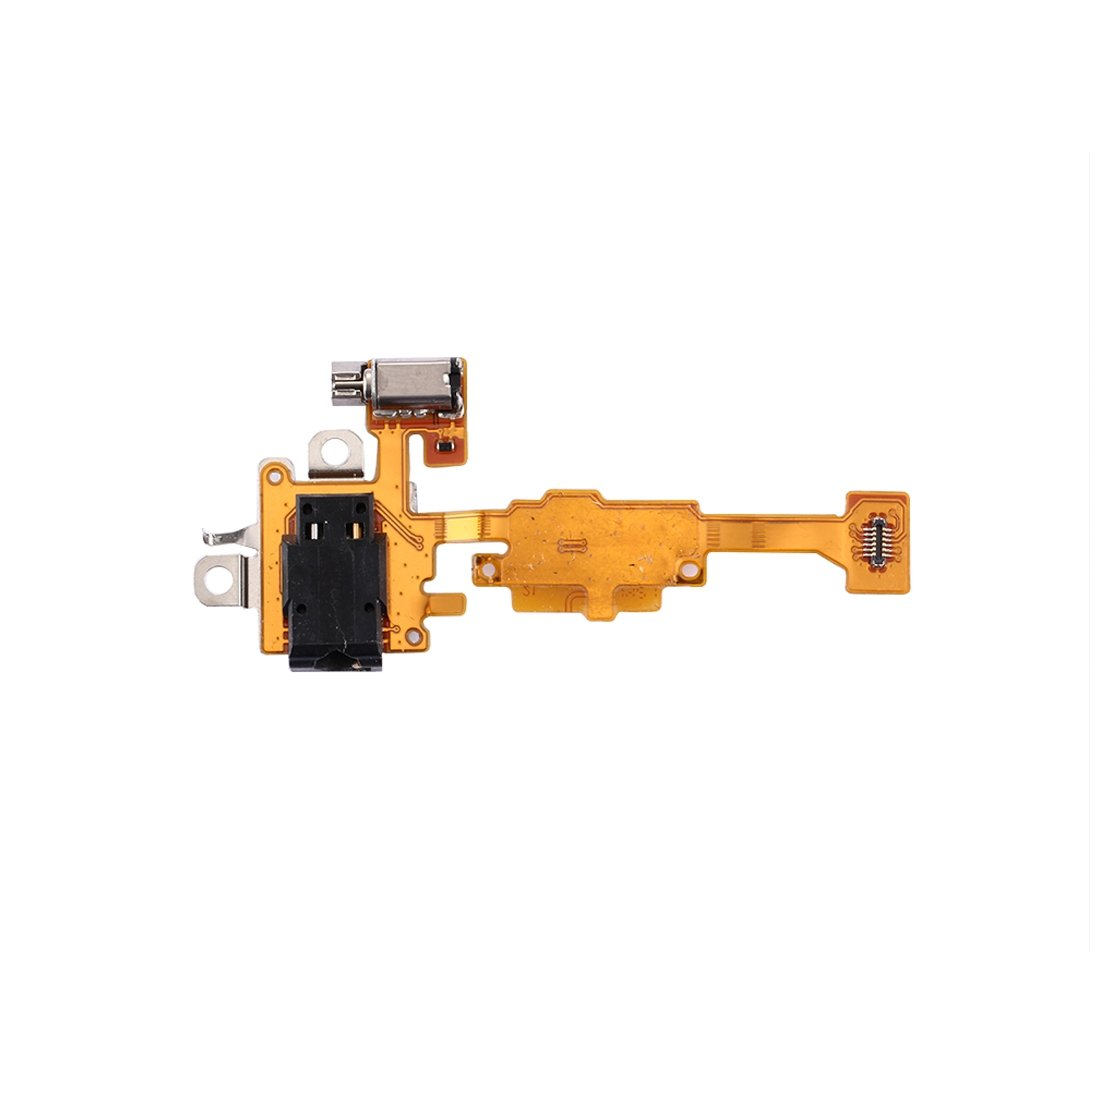 JUNXI Phone Earphone Jack Flex Cable for Nokia Lumia 630 Easy Install Tray by JUNXI